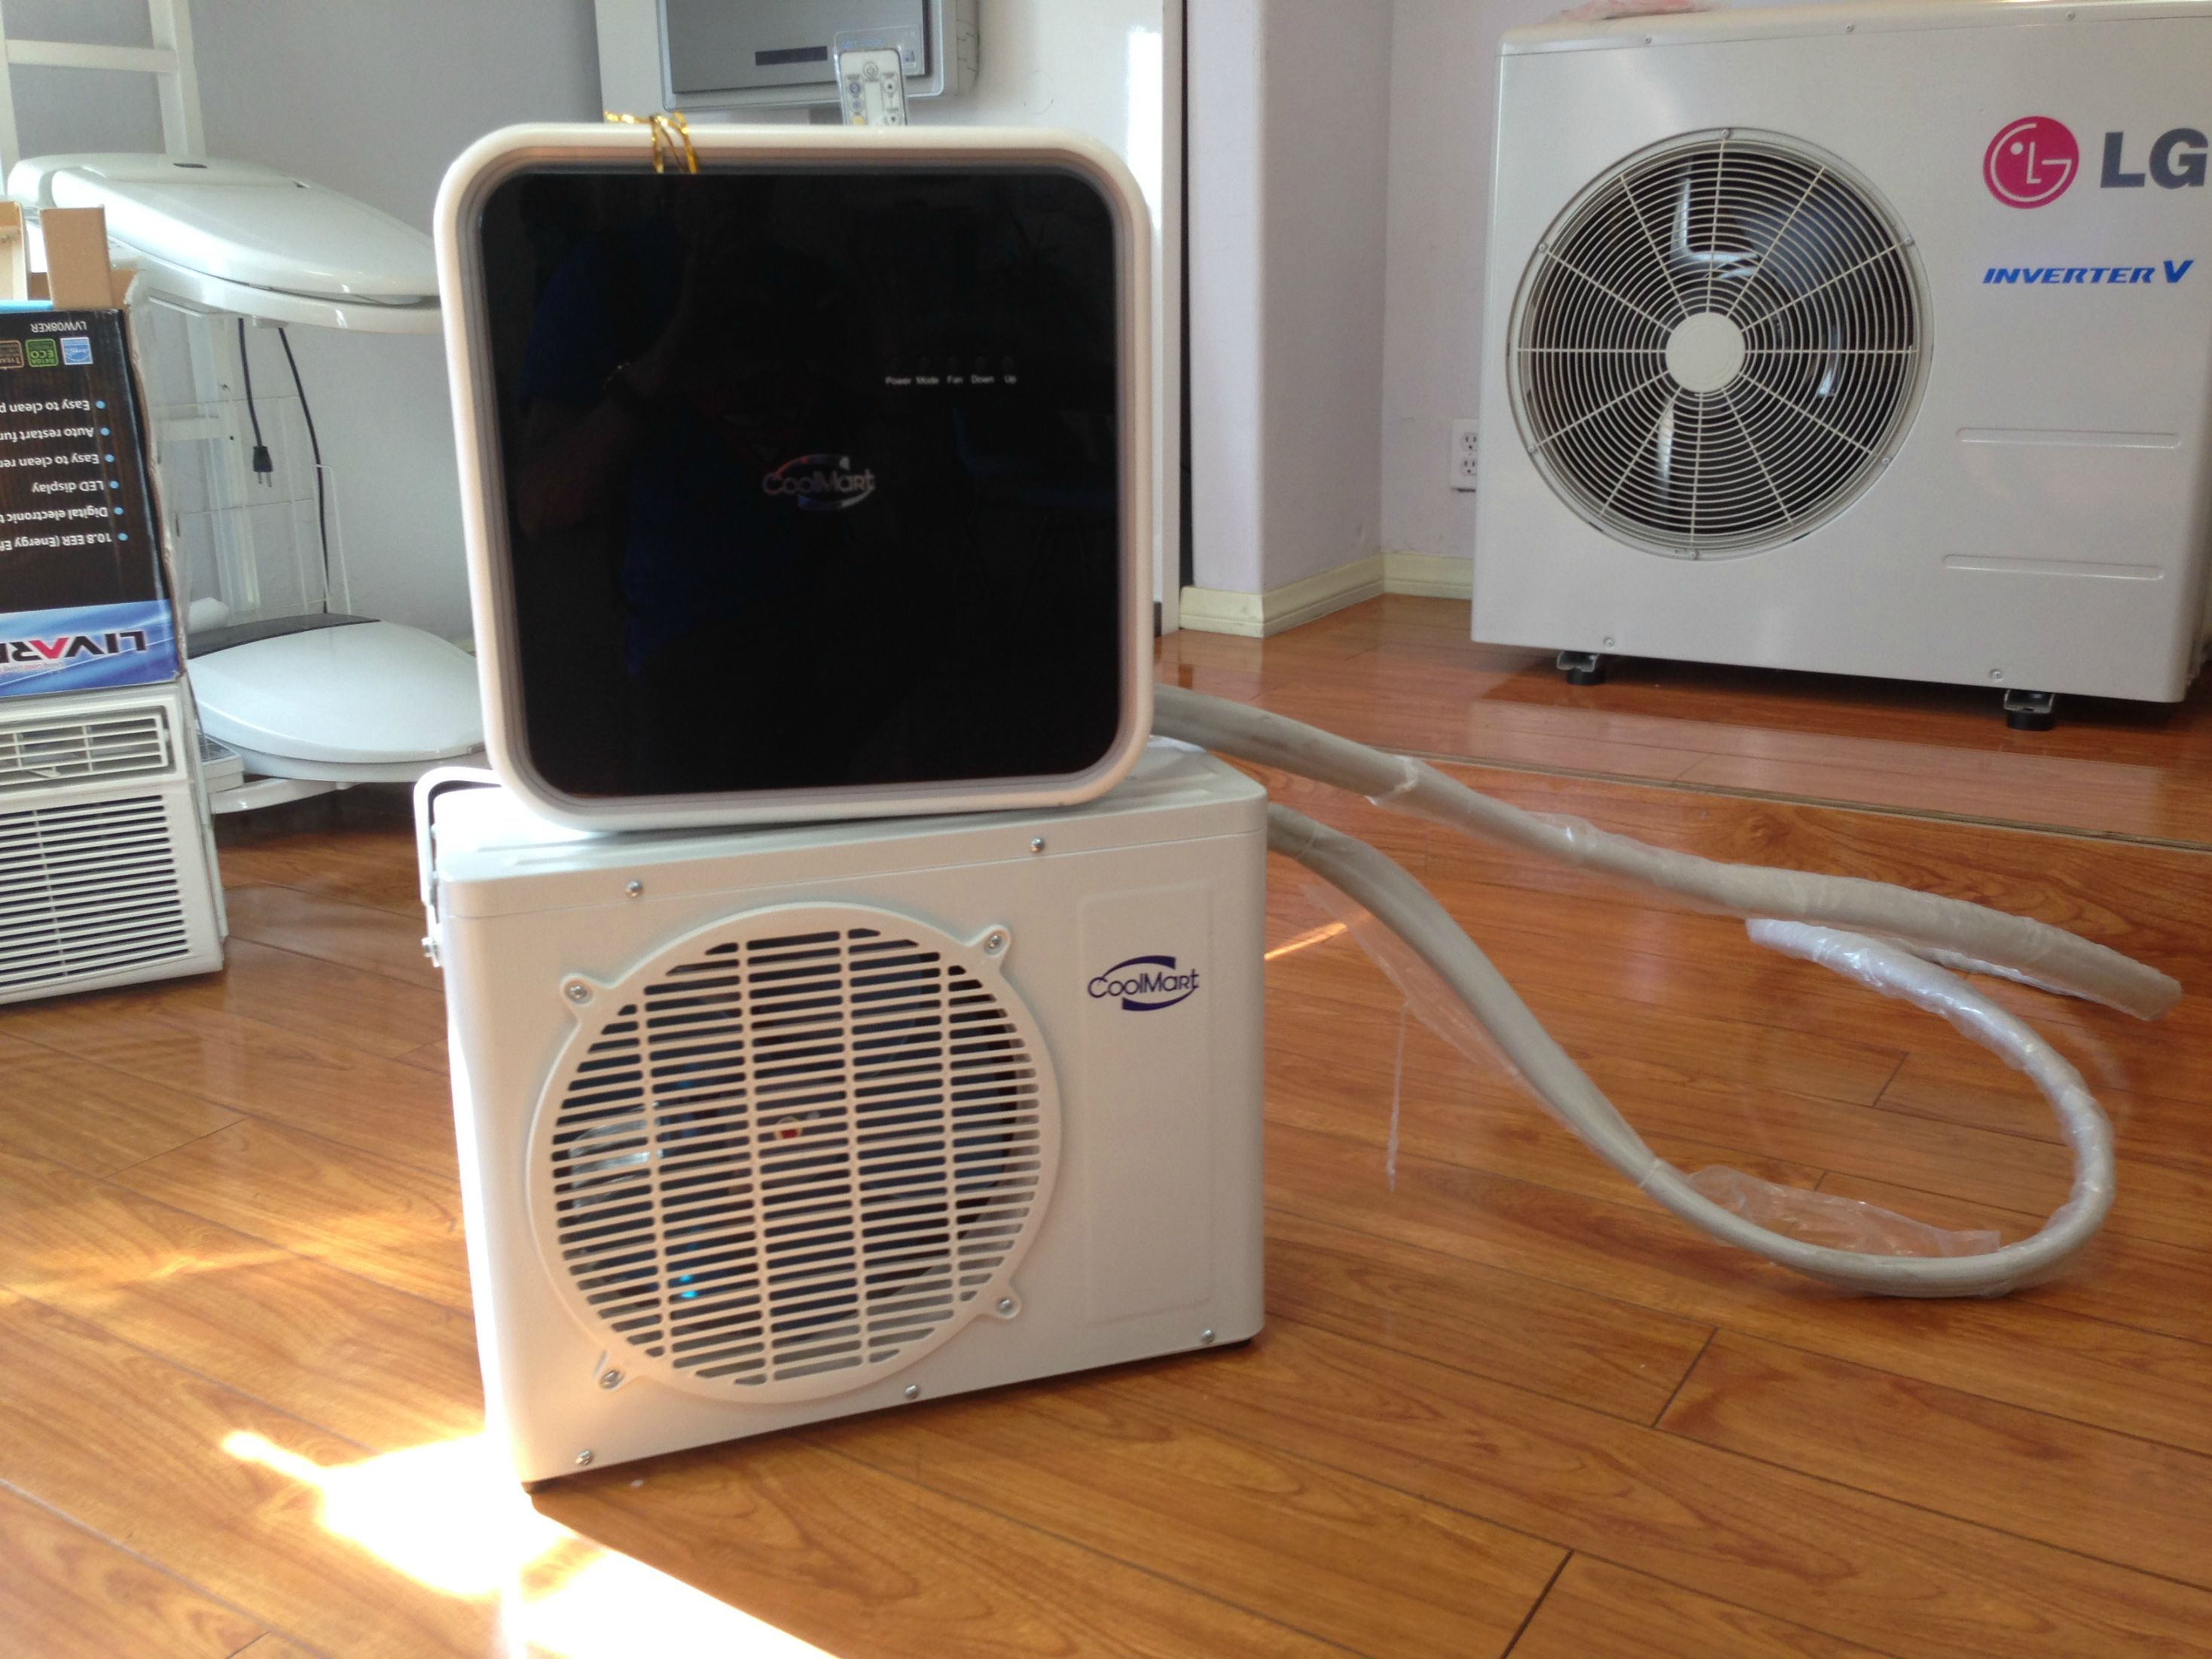 mini split air conditioner portable diy air conditioner pinterest diy air conditioner. Black Bedroom Furniture Sets. Home Design Ideas